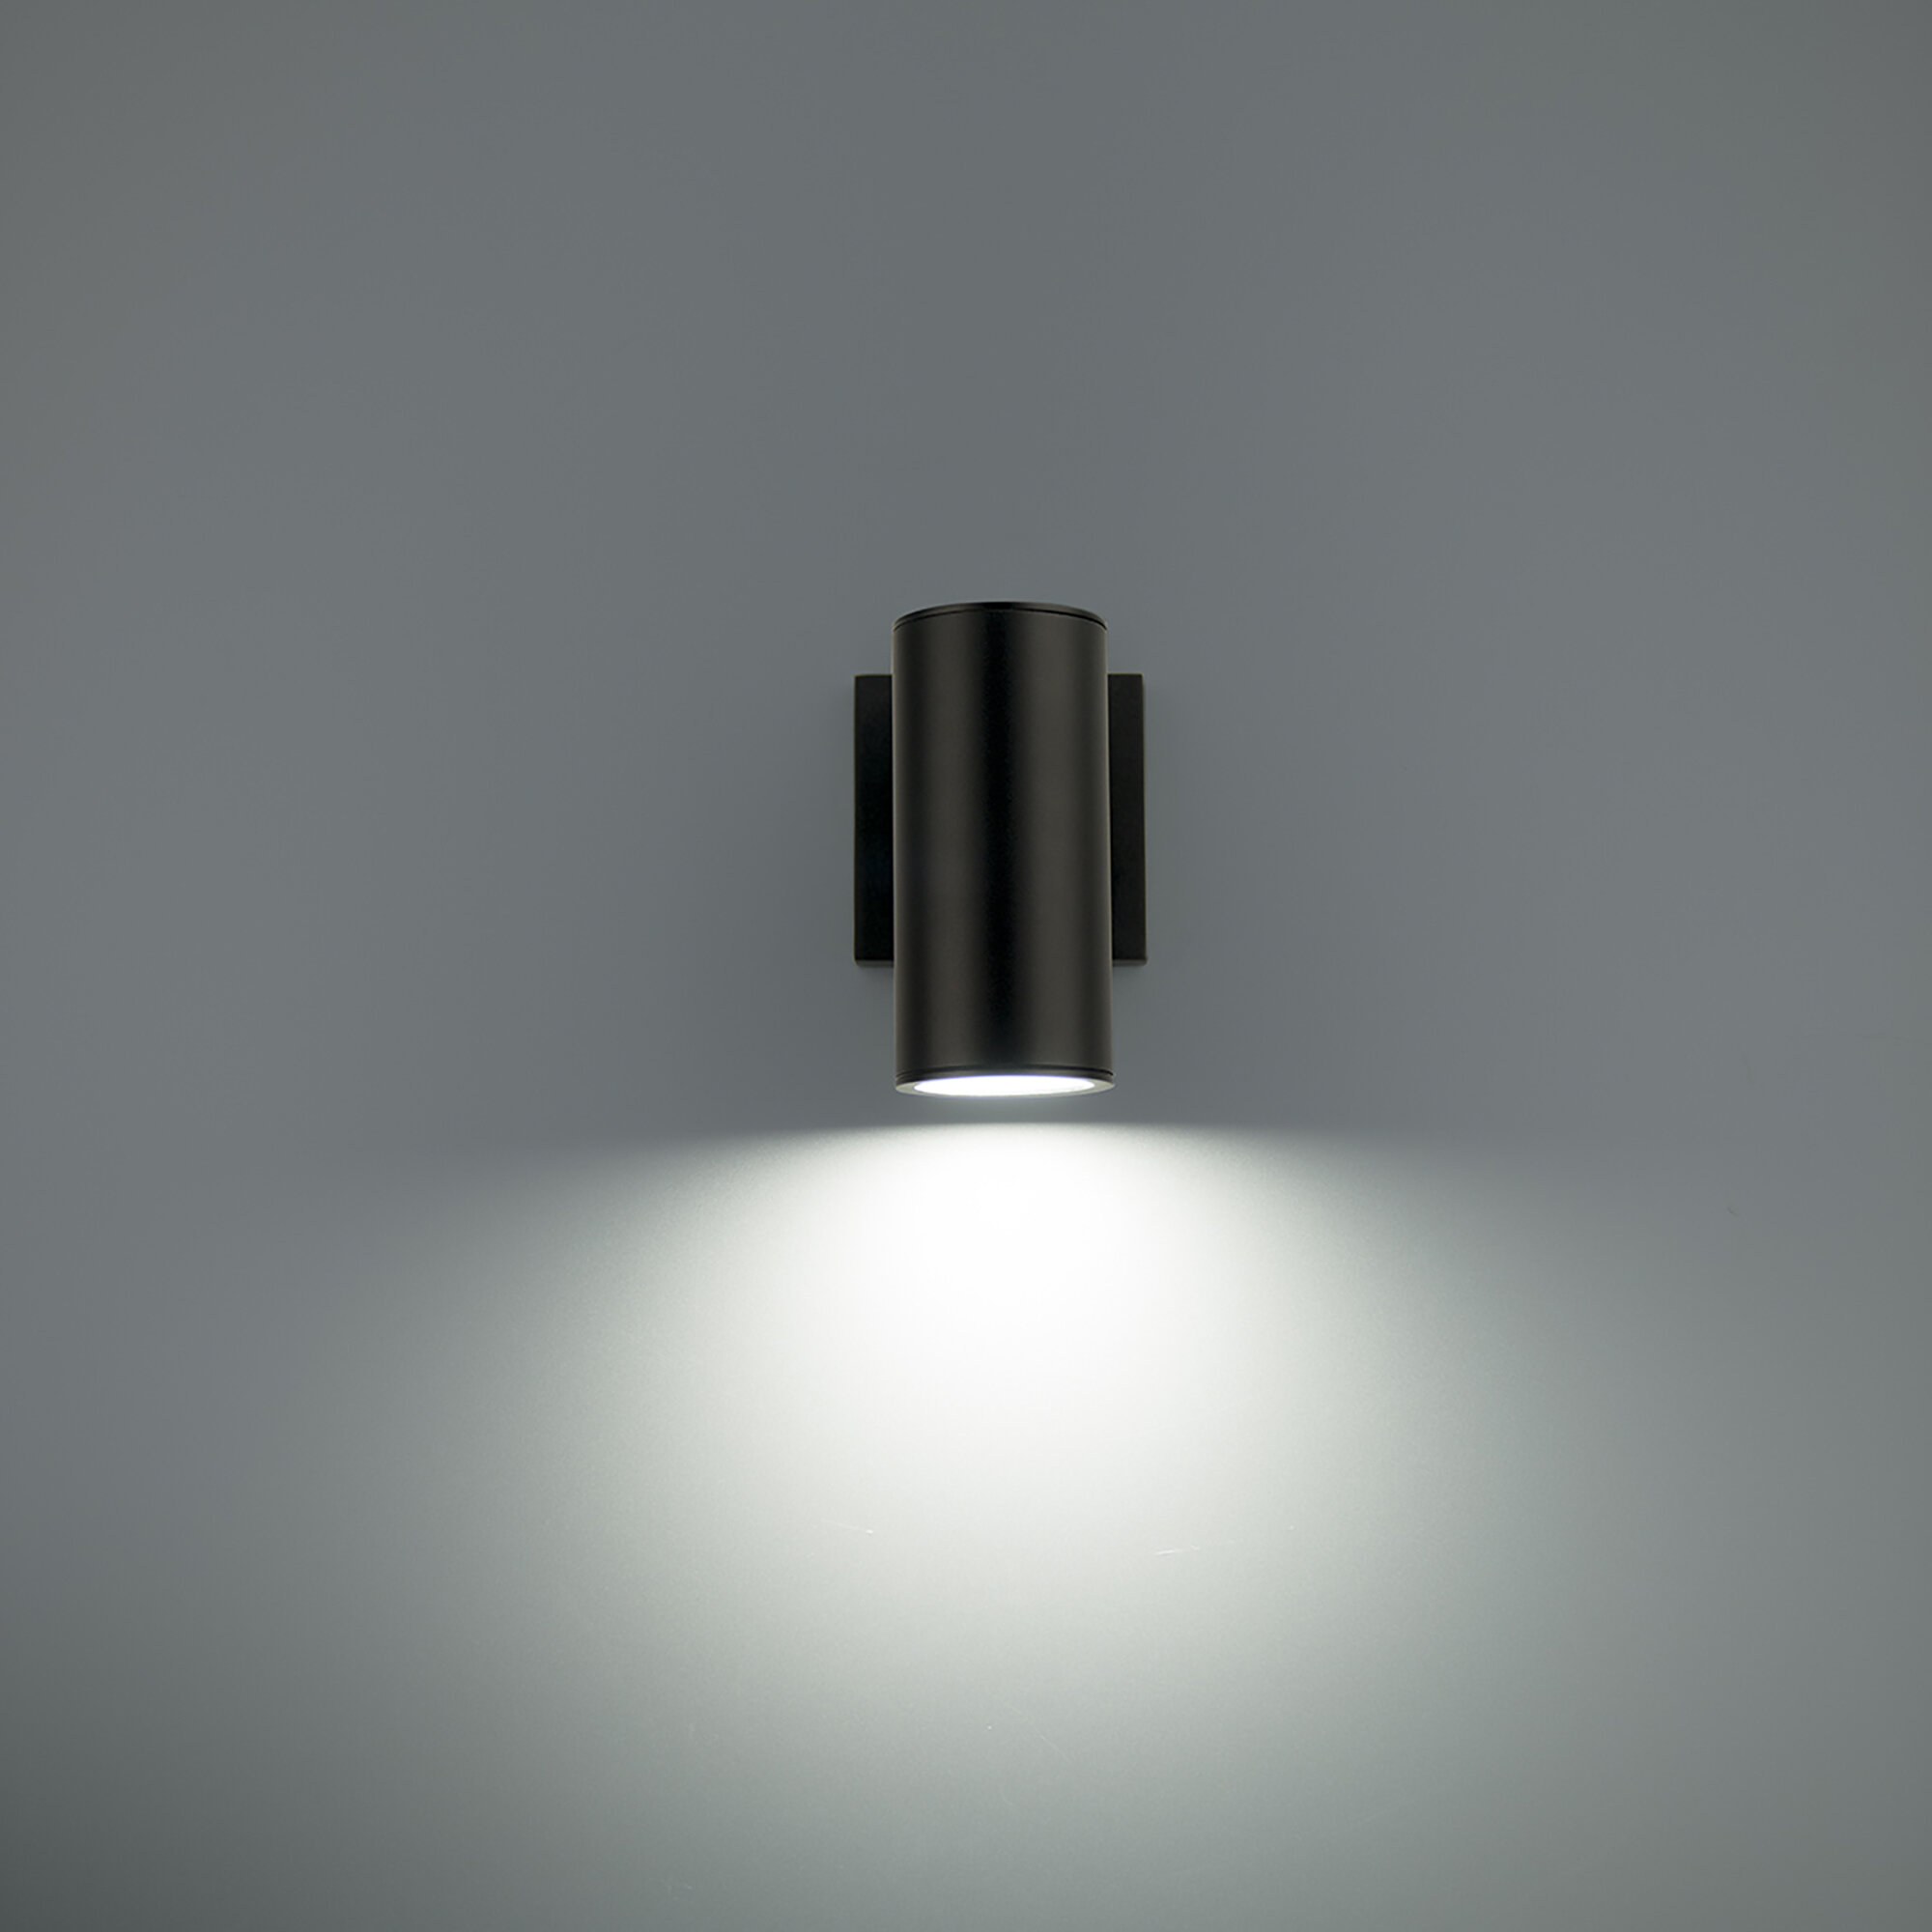 2 Light Small Less Than 12 In Outdoor Wall Lighting You Ll Love In 2021 Wayfair